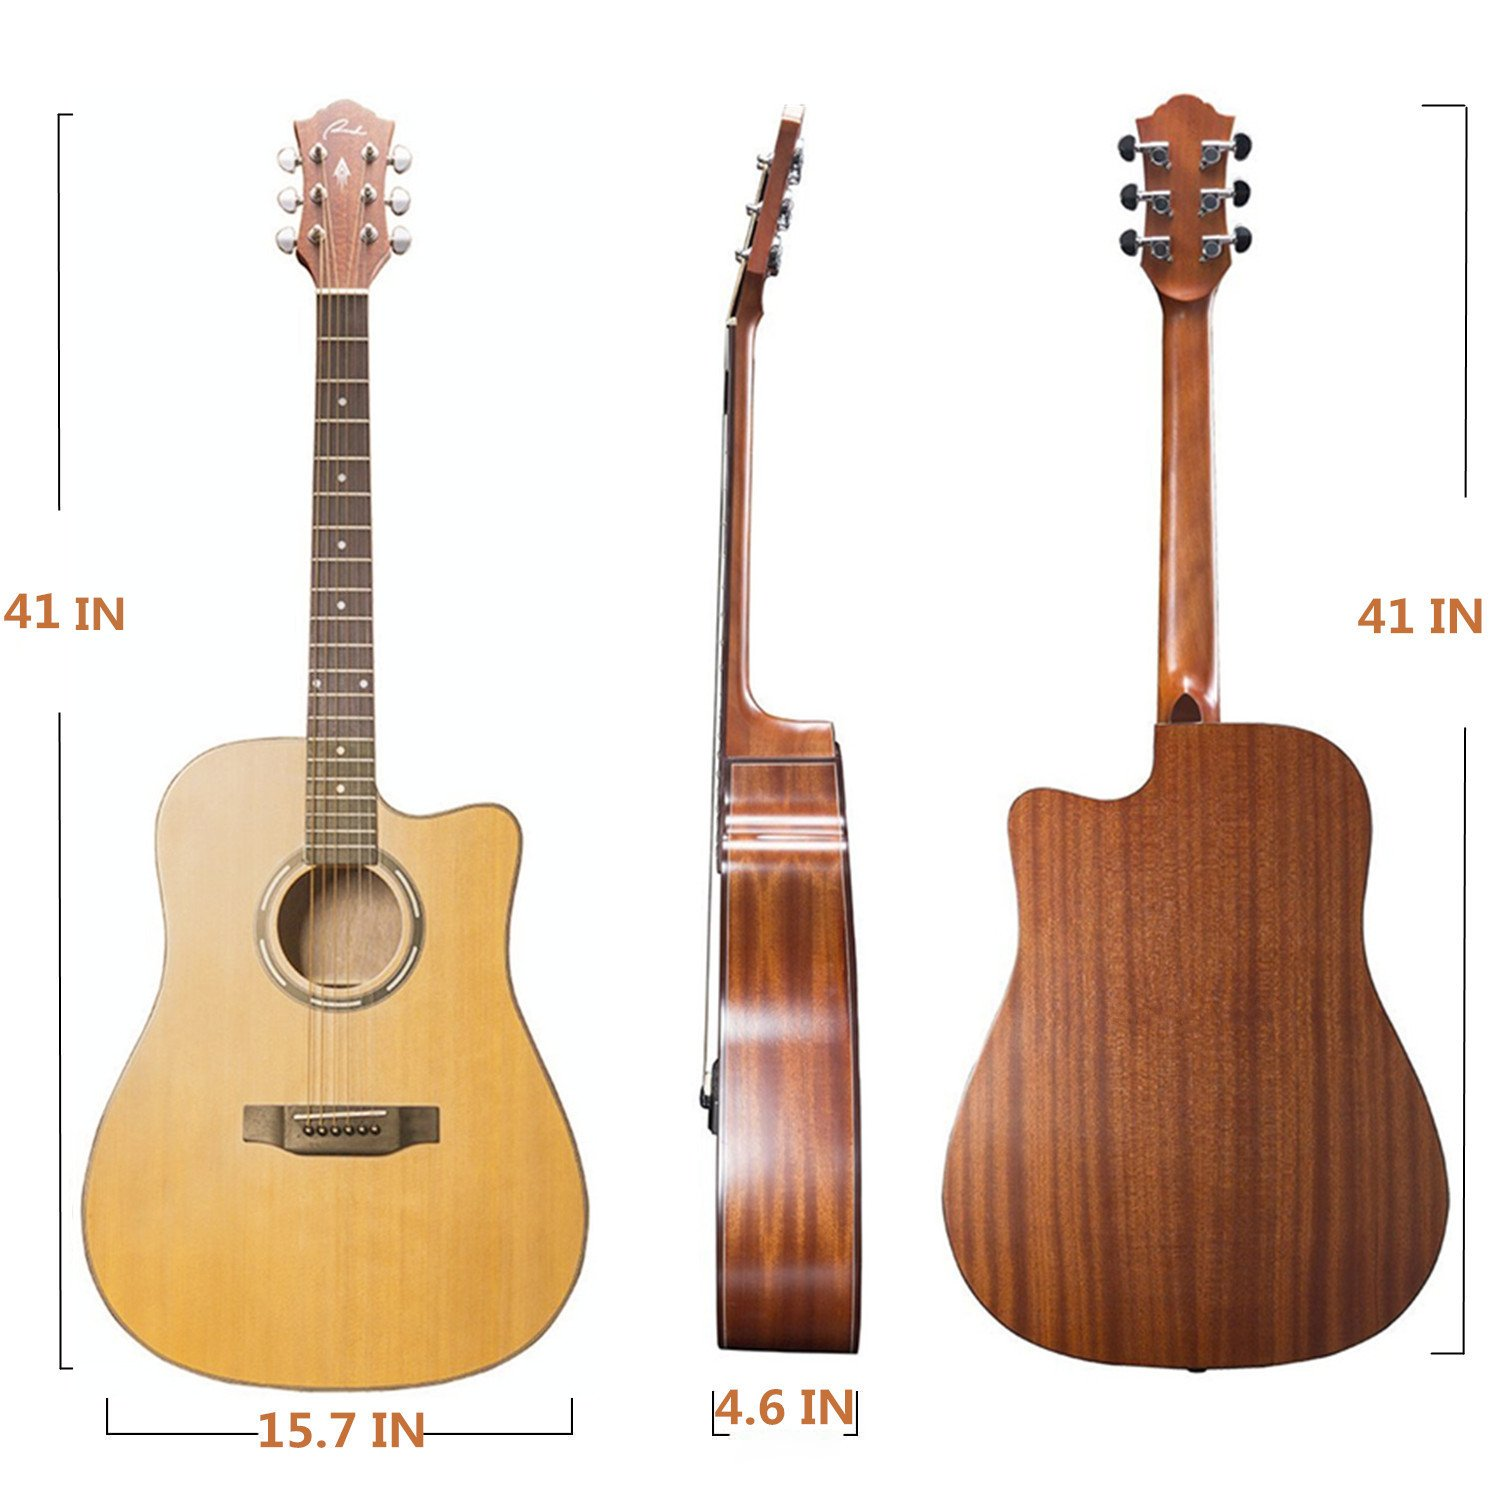 The Dimensions of the Guitar Ranch Full Size Cutaway Dreadnought Acoustic Guitar